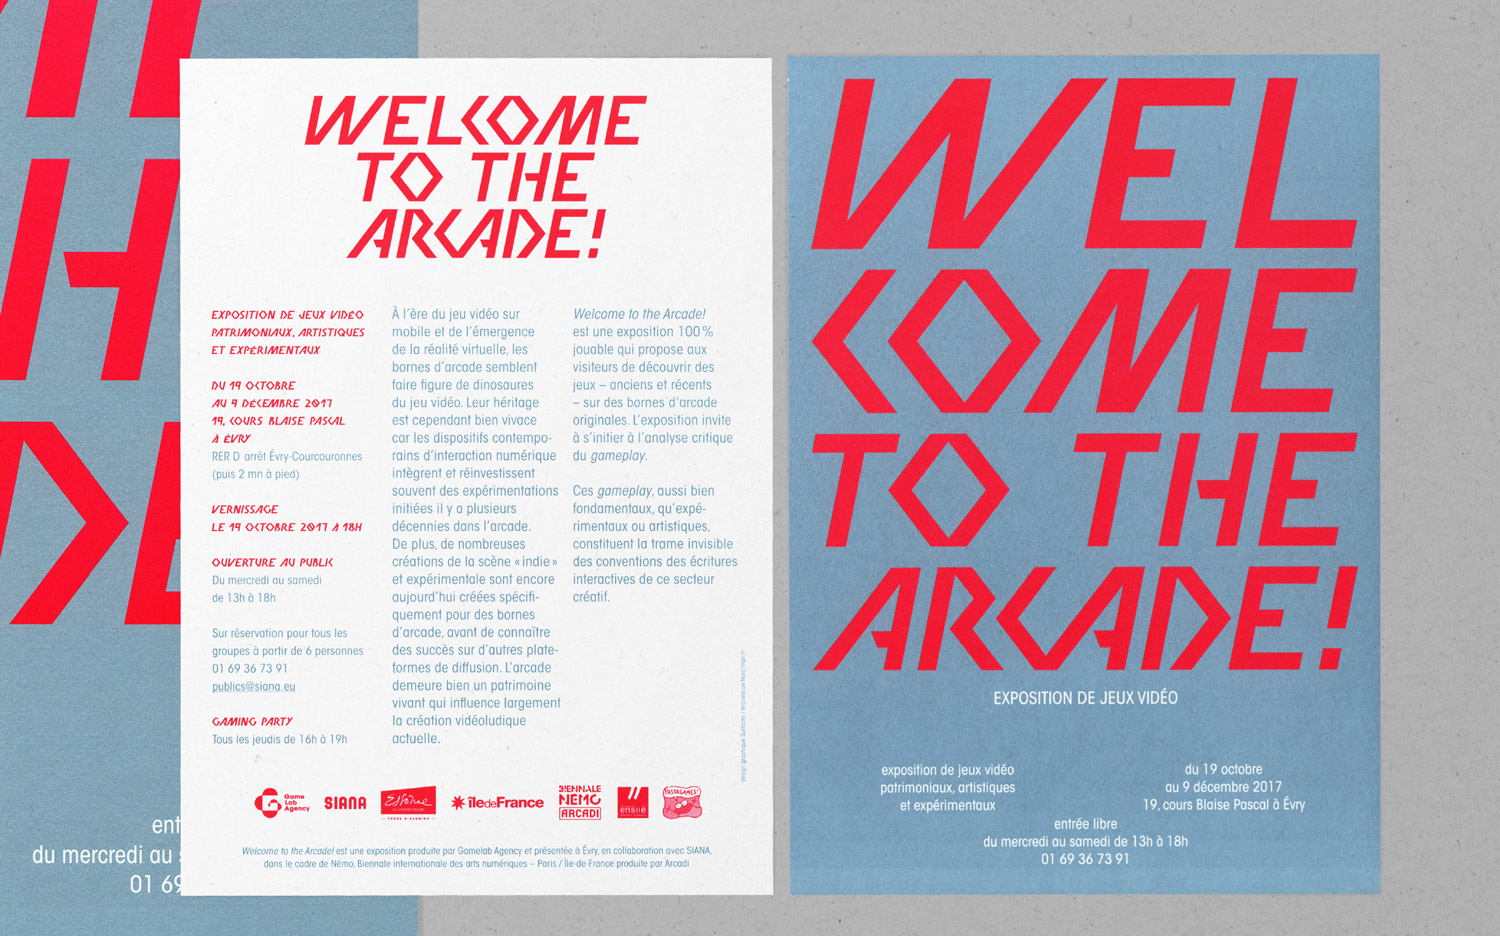 Welcome to the Arcade!